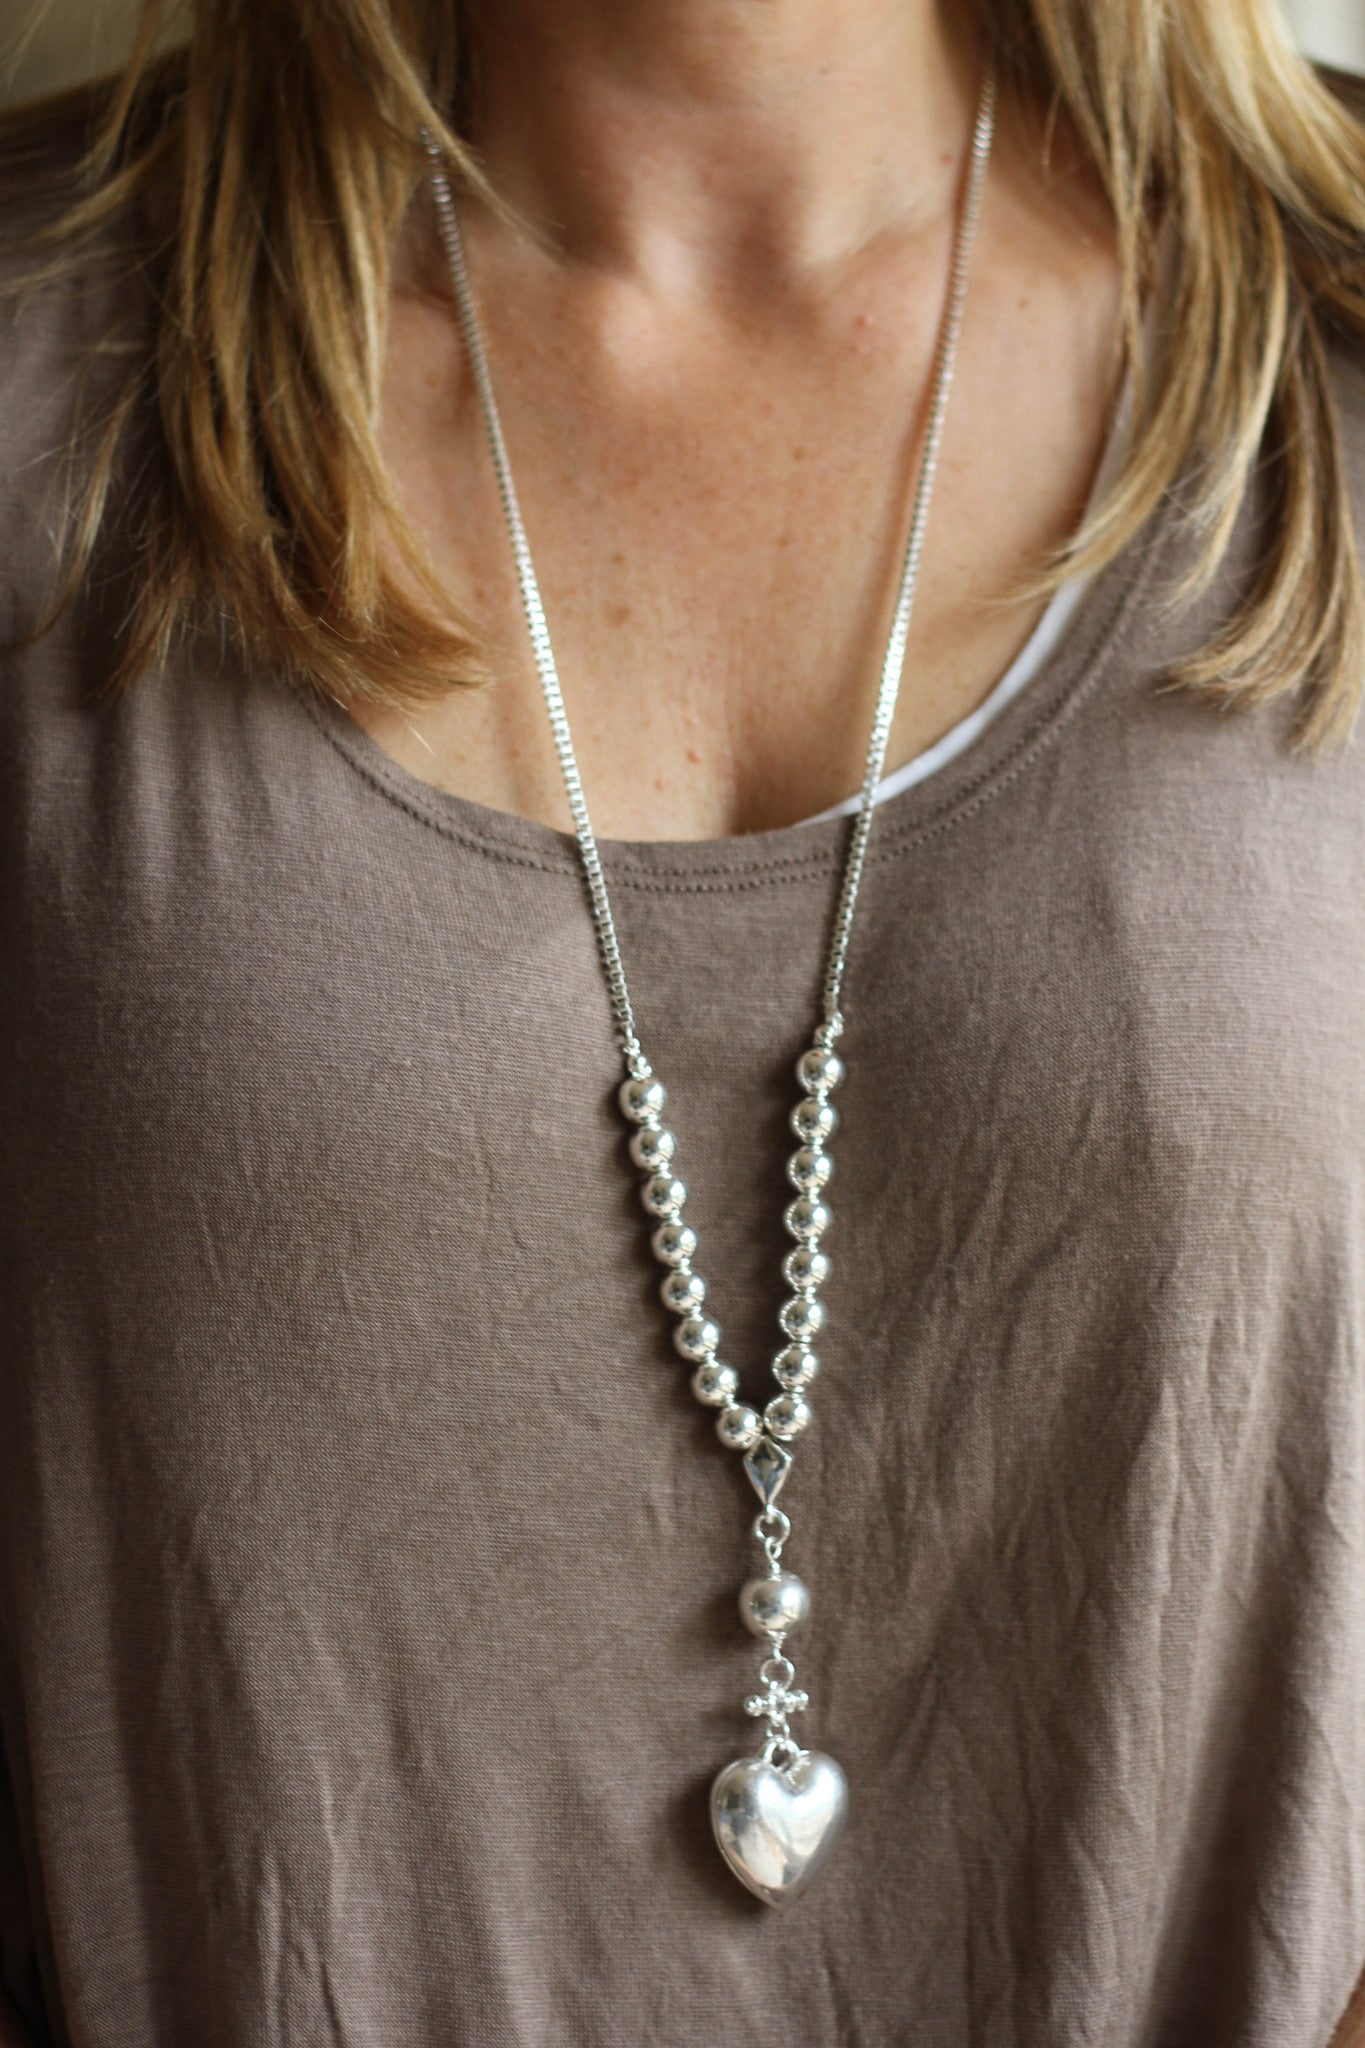 Relaxation necklace - Silver Box Chain